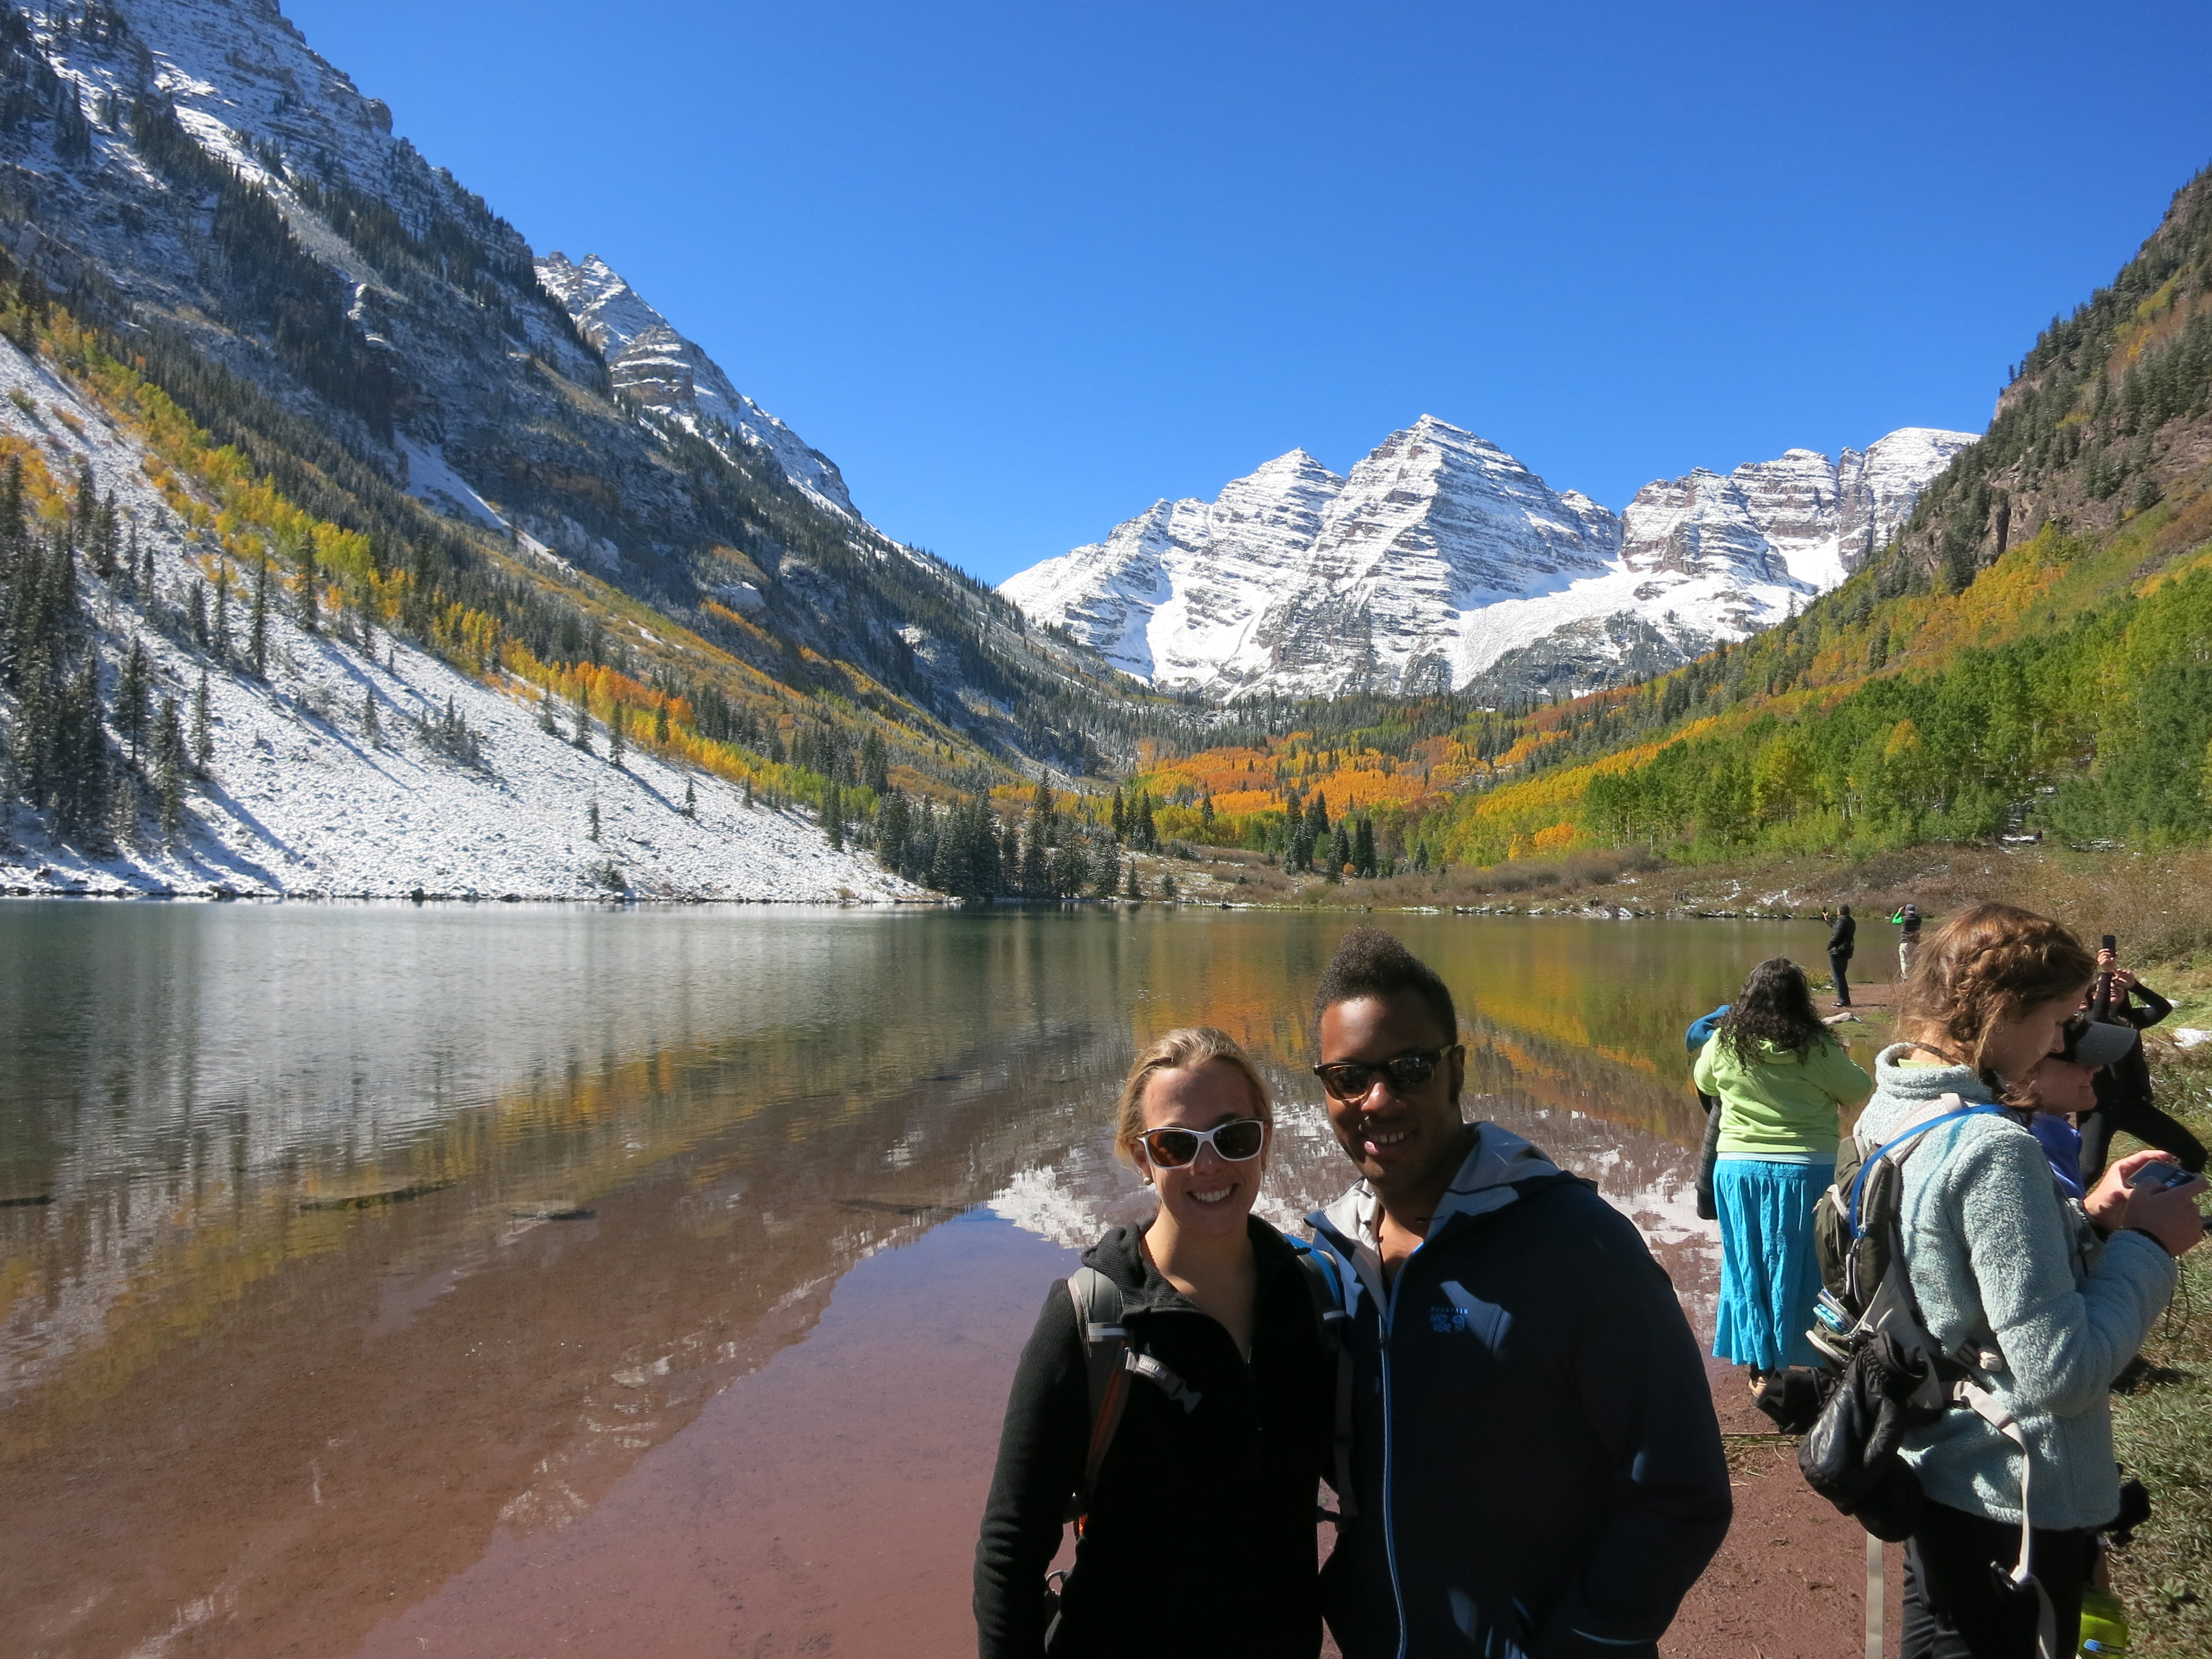 The Most Beautiful Day Maroon Bells Hike Peaks And Passports